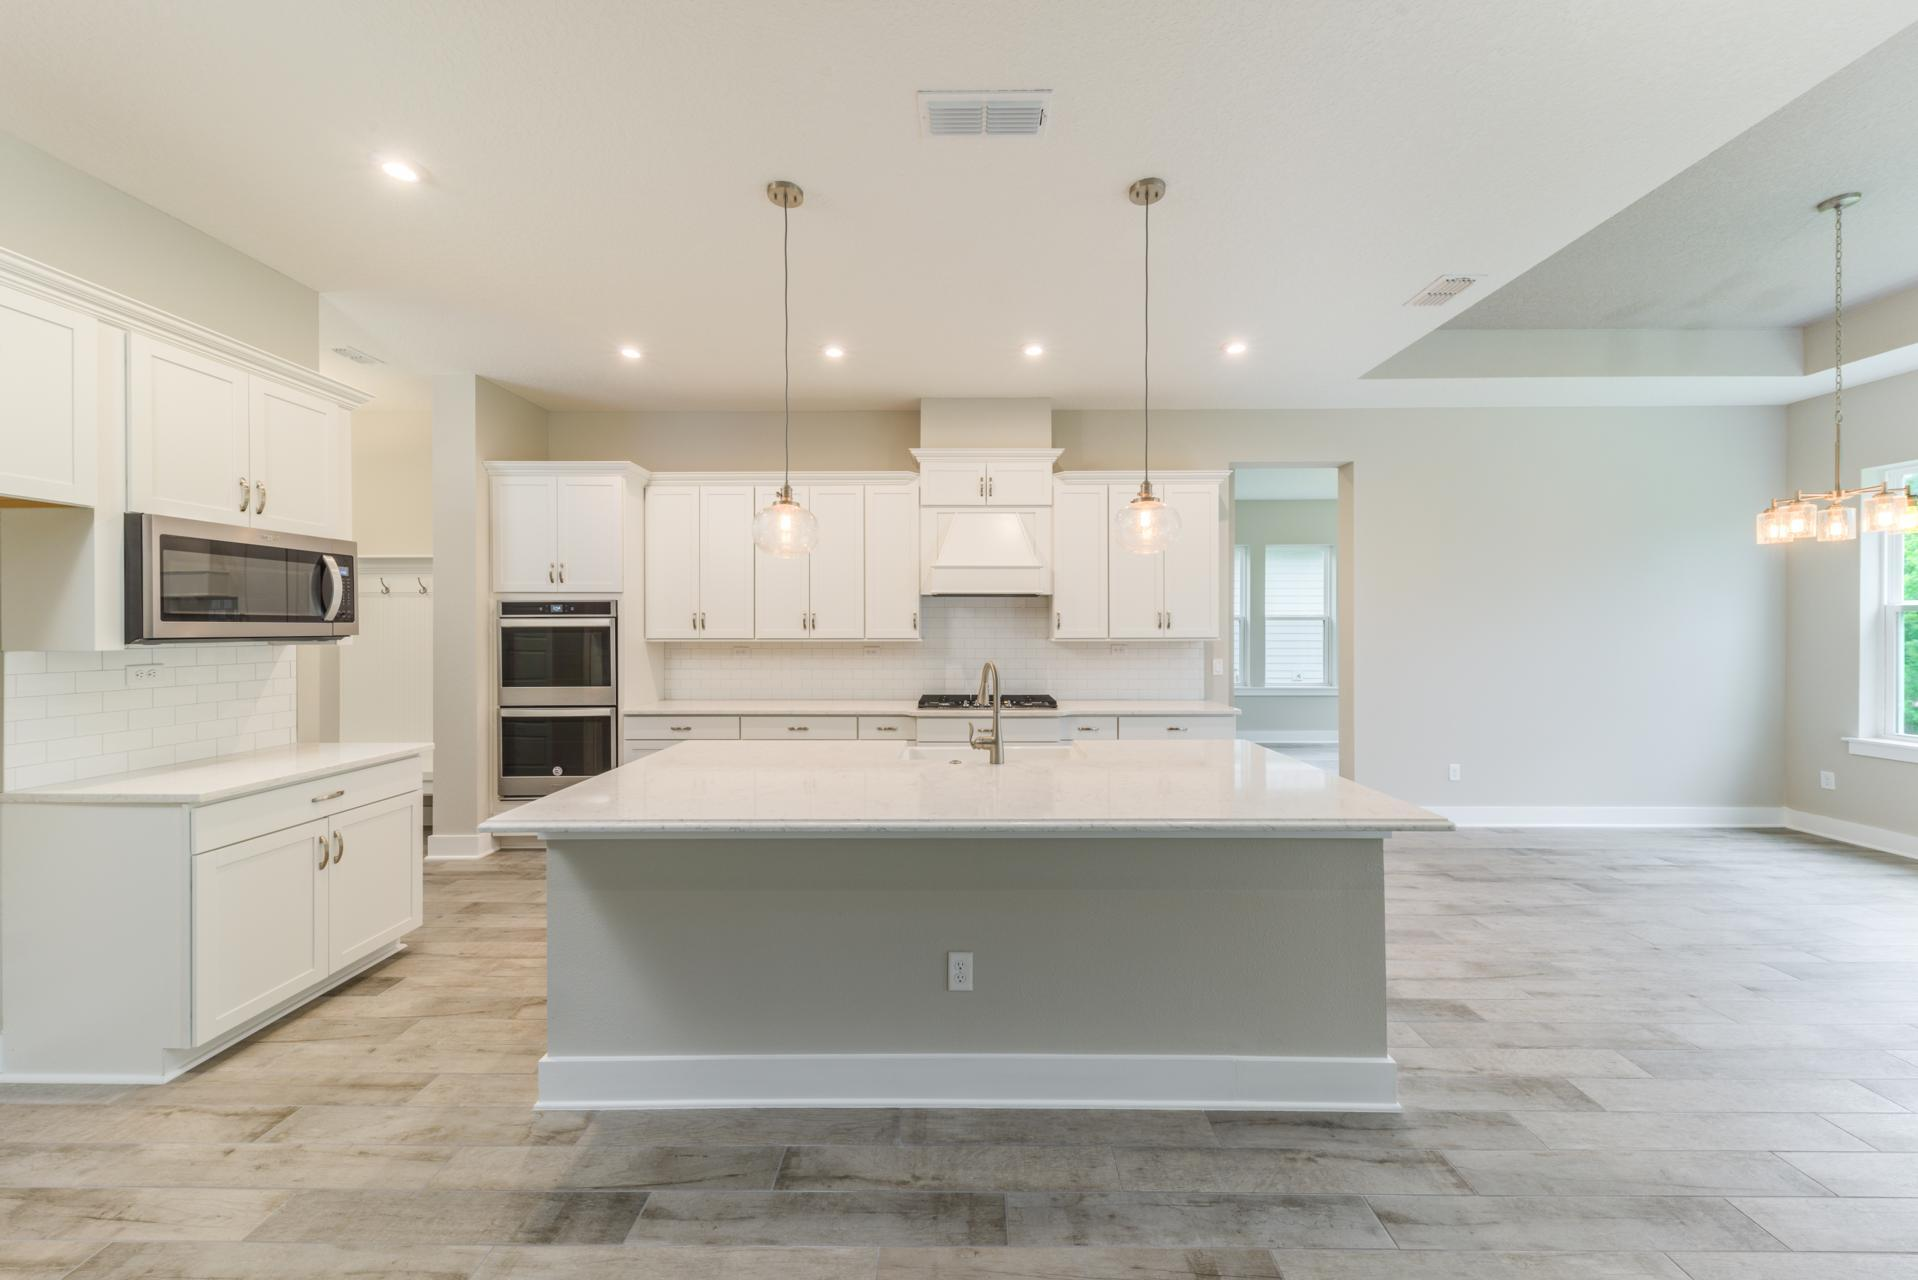 Kitchen featured in the Crestmoore II By Drees Homes in Jacksonville-St. Augustine, FL